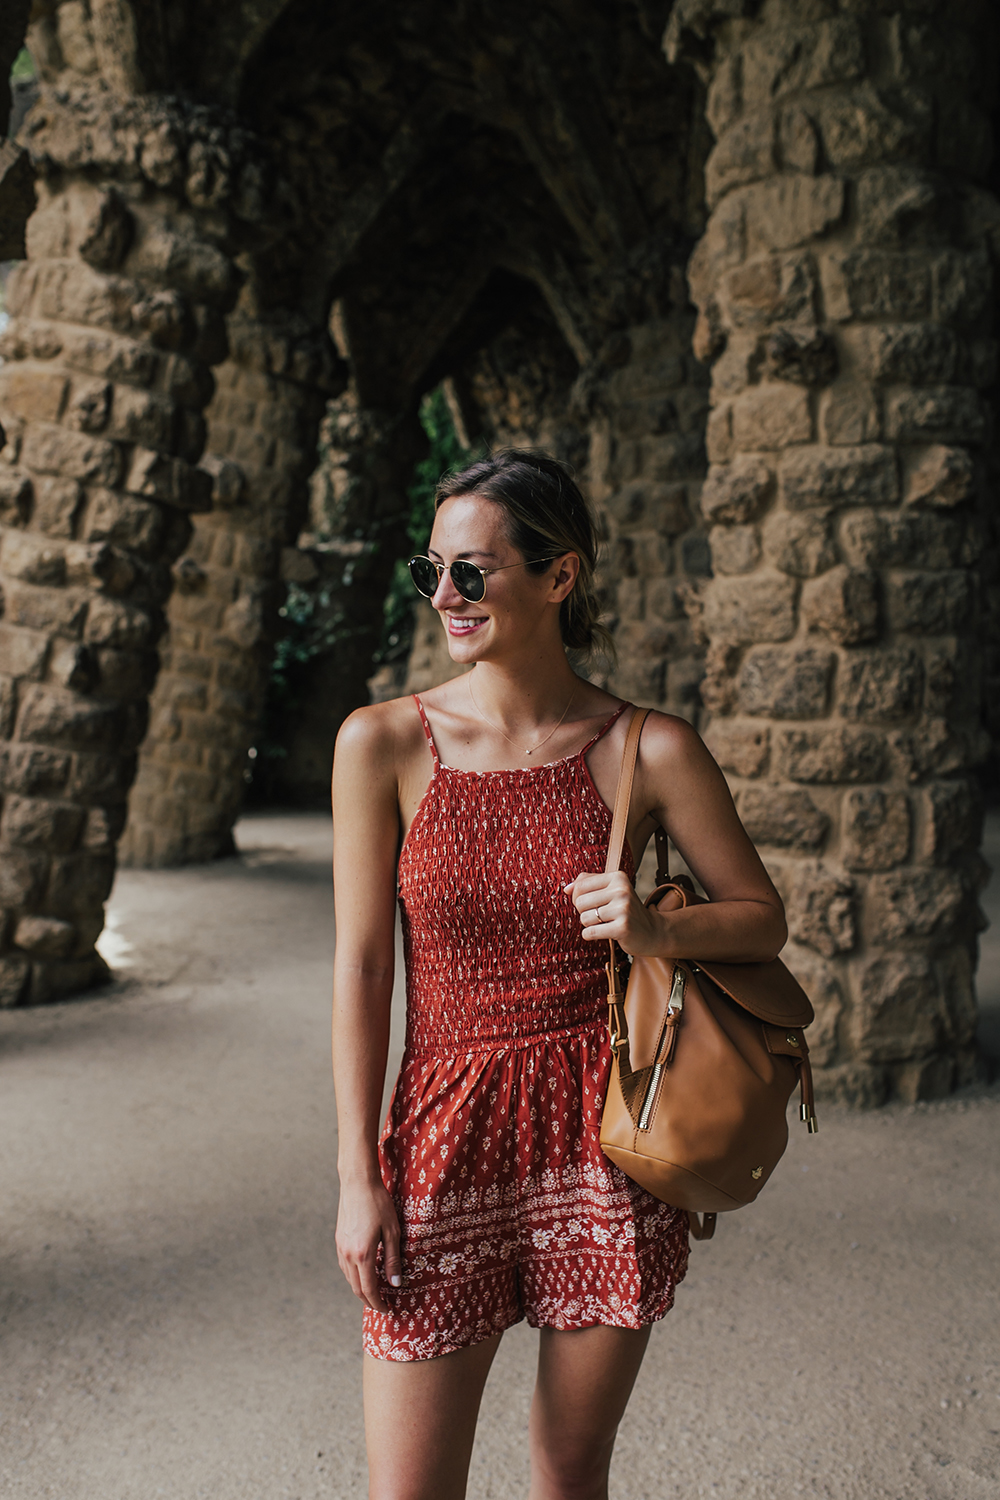 livvyland-blog-olivia-watson-travel-fashion-blogger-barcelona-costa-brava-spain-friends-trip-air-bnb-park-gruell-romper-travel-backpack